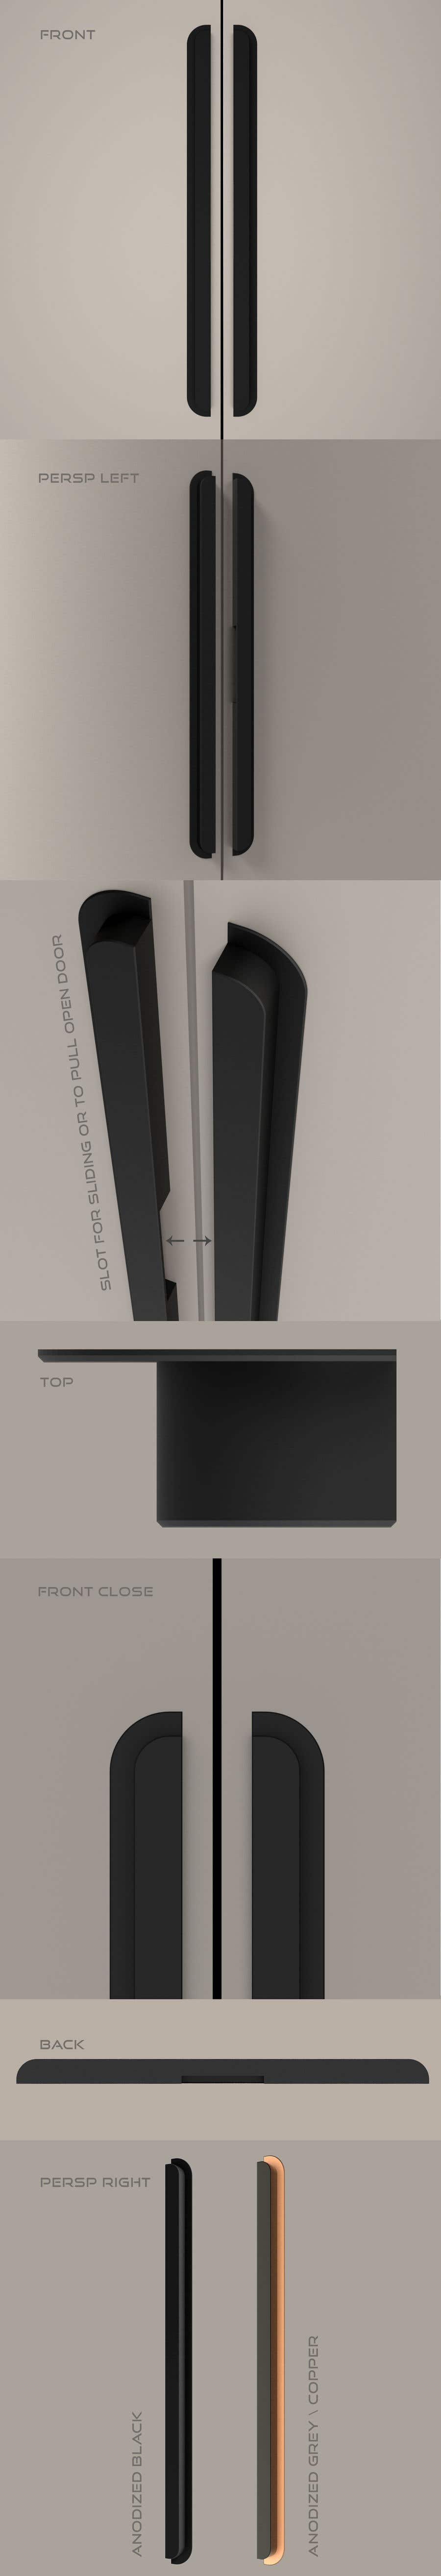 Proposition n°                                        46                                      du concours                                         Tall Aluminum Handles for Openable or Sliding Wardrobes